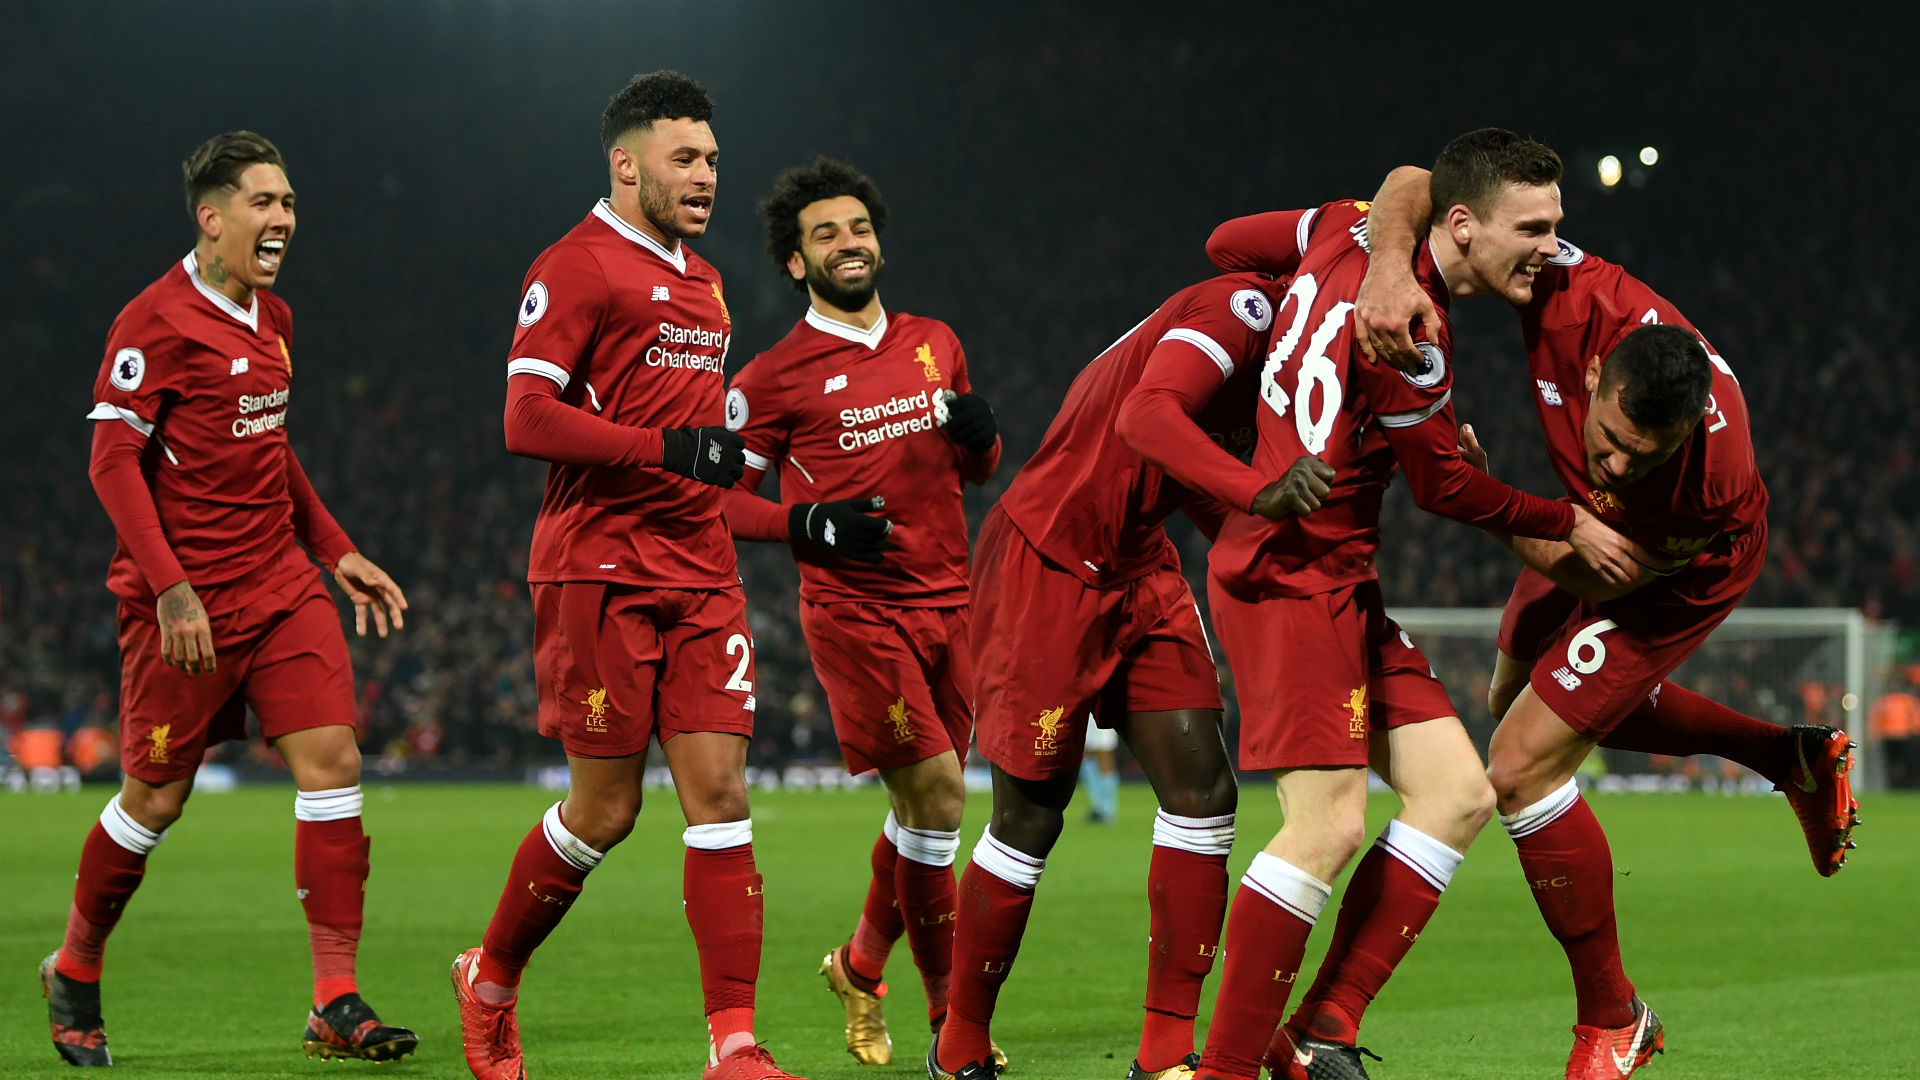 Premier league 20182019 Champion Liverpool Betinumcom 1920x1080